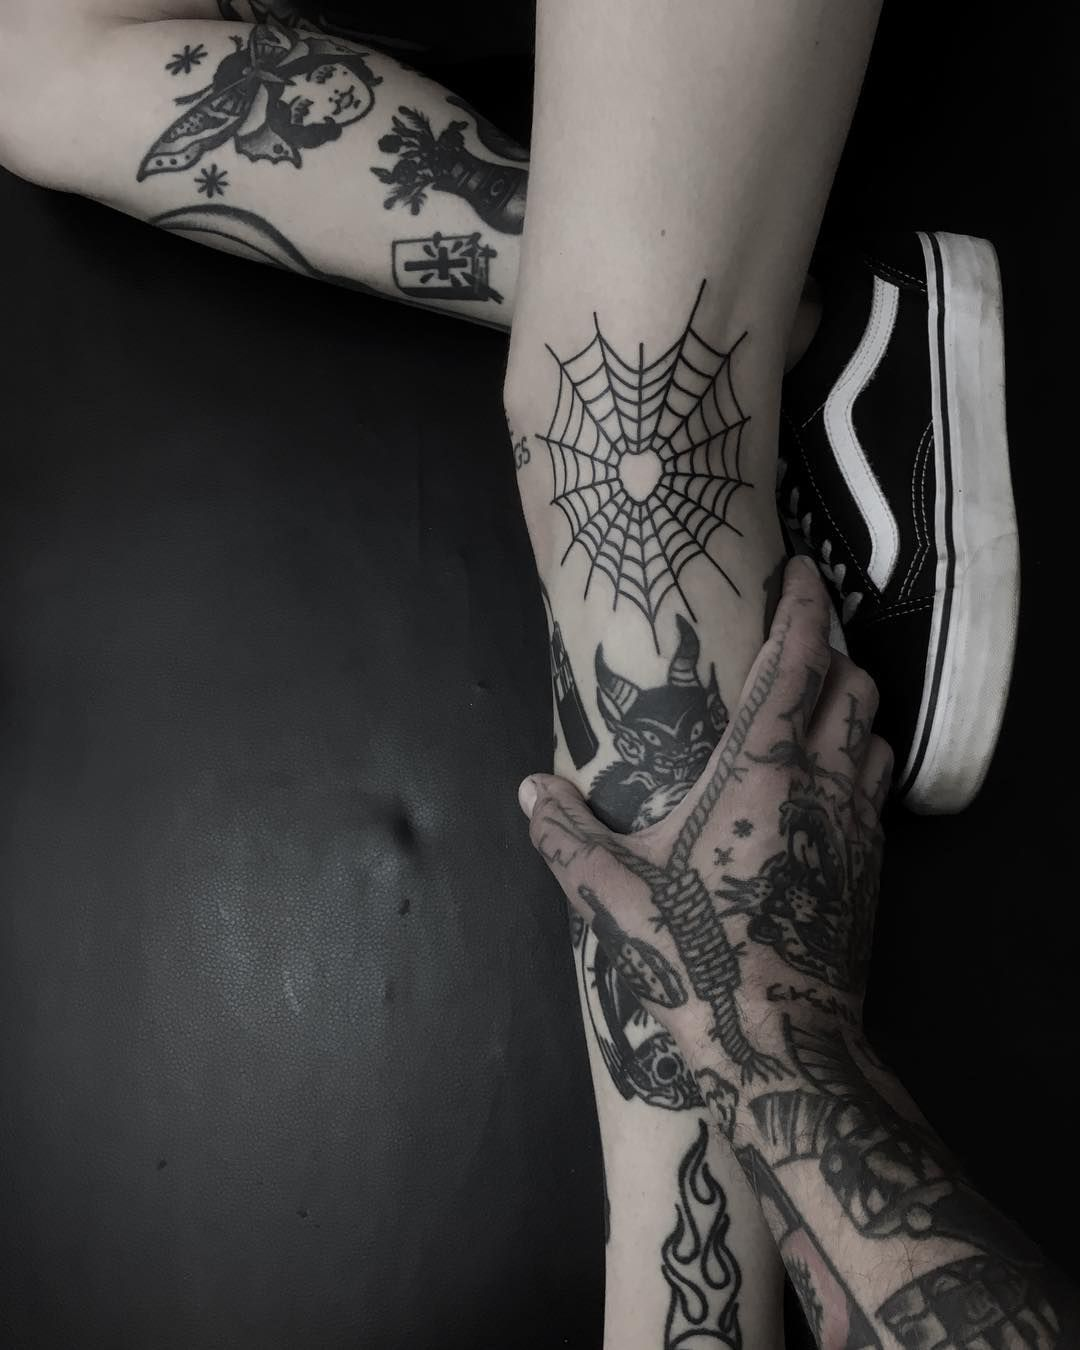 Heart-shaped spiderweb by Krzysztof Szeszko | Web tattoo, Ink ...